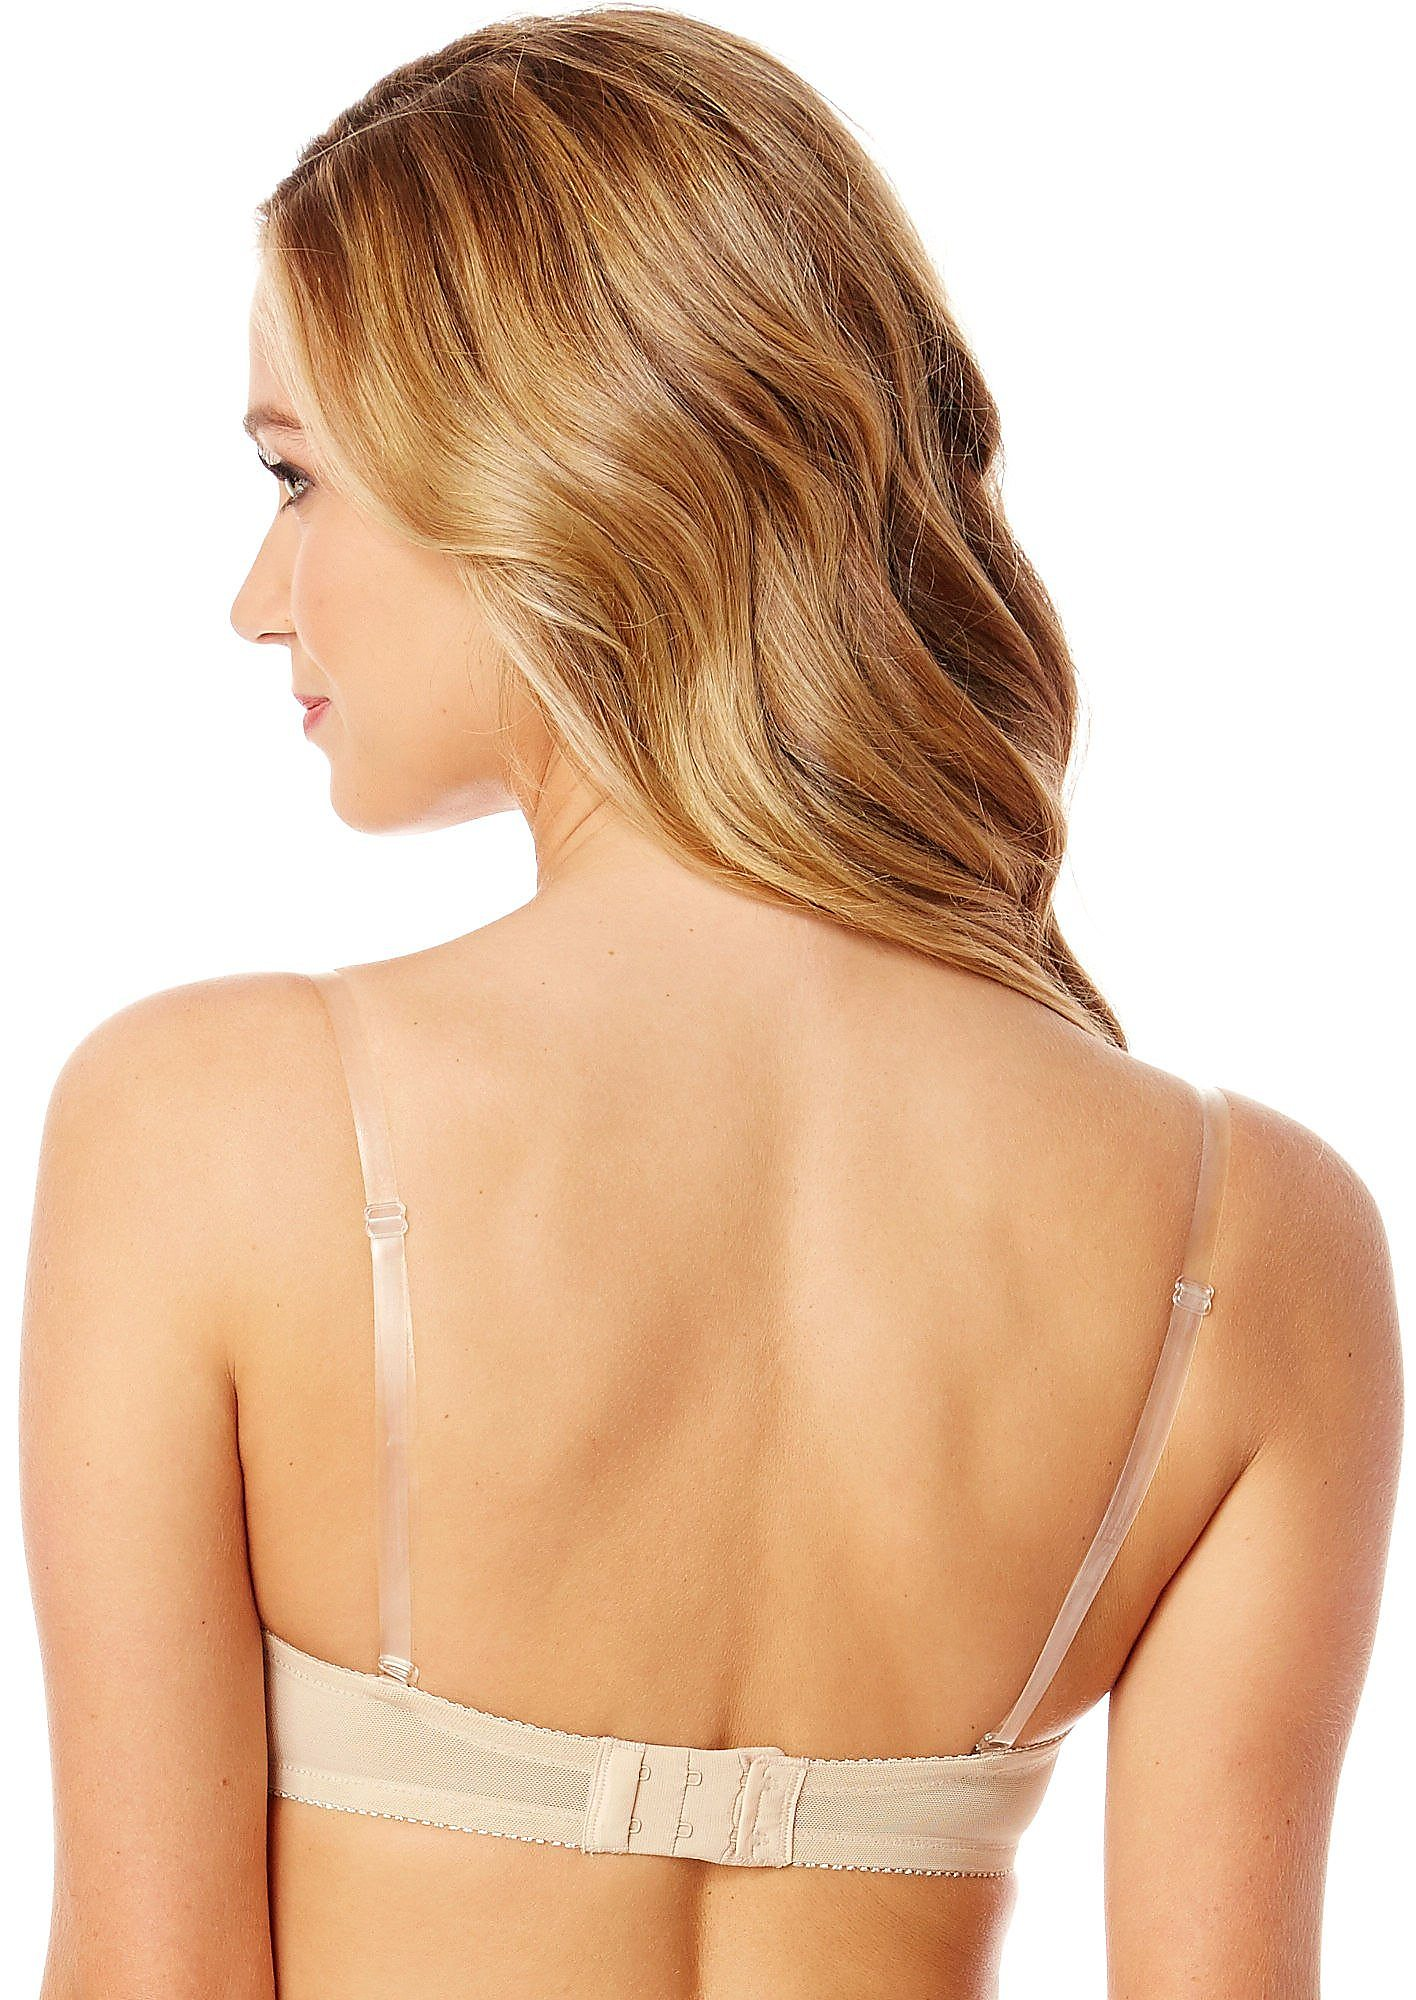 4f60a4d887 Lily Of France Gel Touch Strapless Bra 2111121